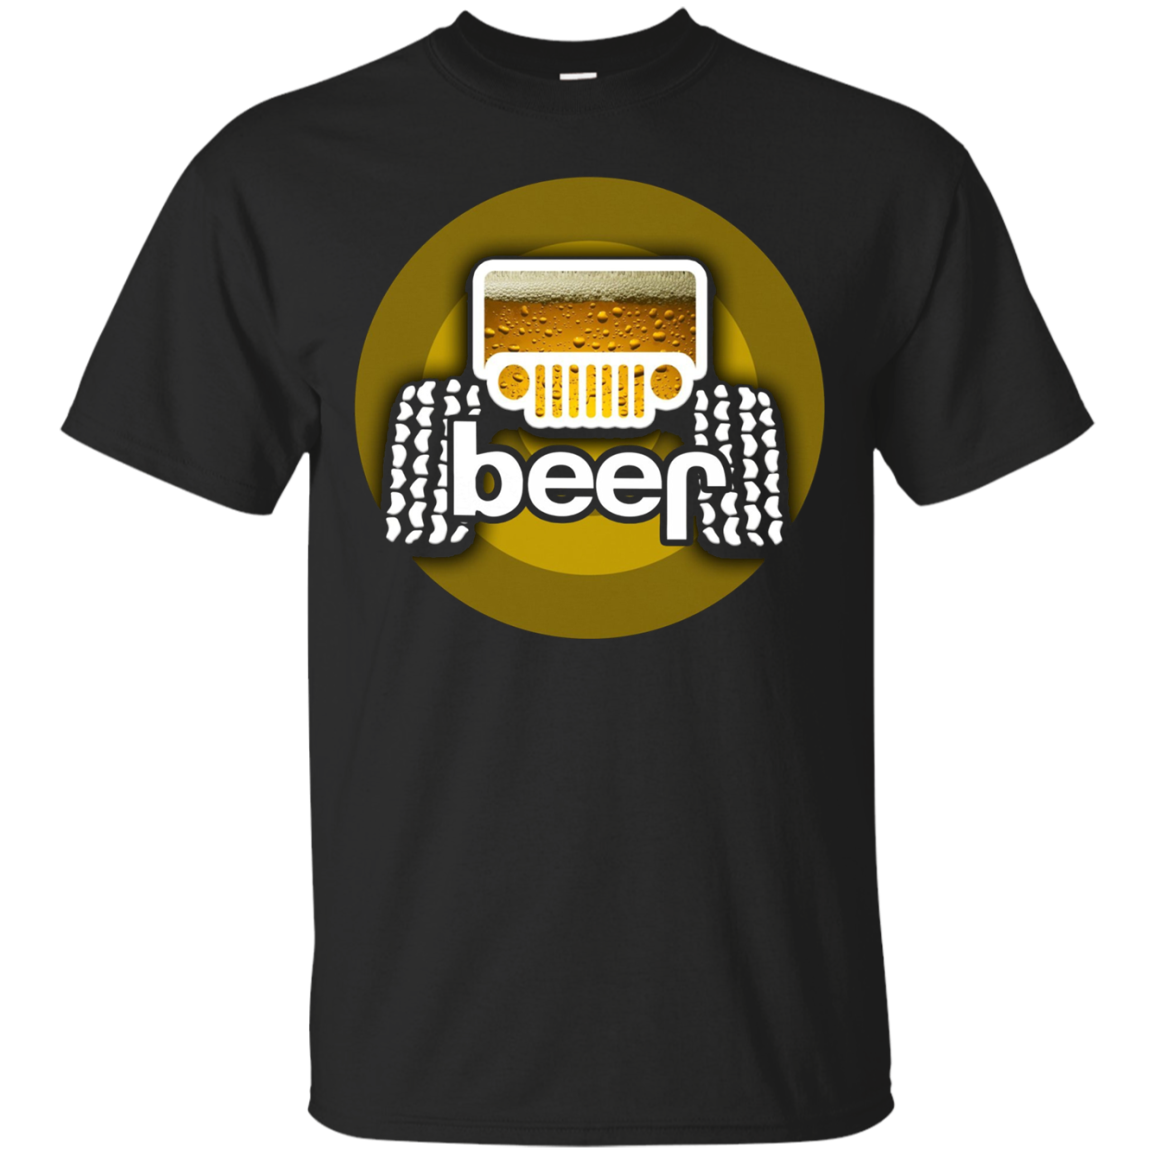 Jeep Beer Funny T-Shirt Cool Adult Alcohol Drinking Gift